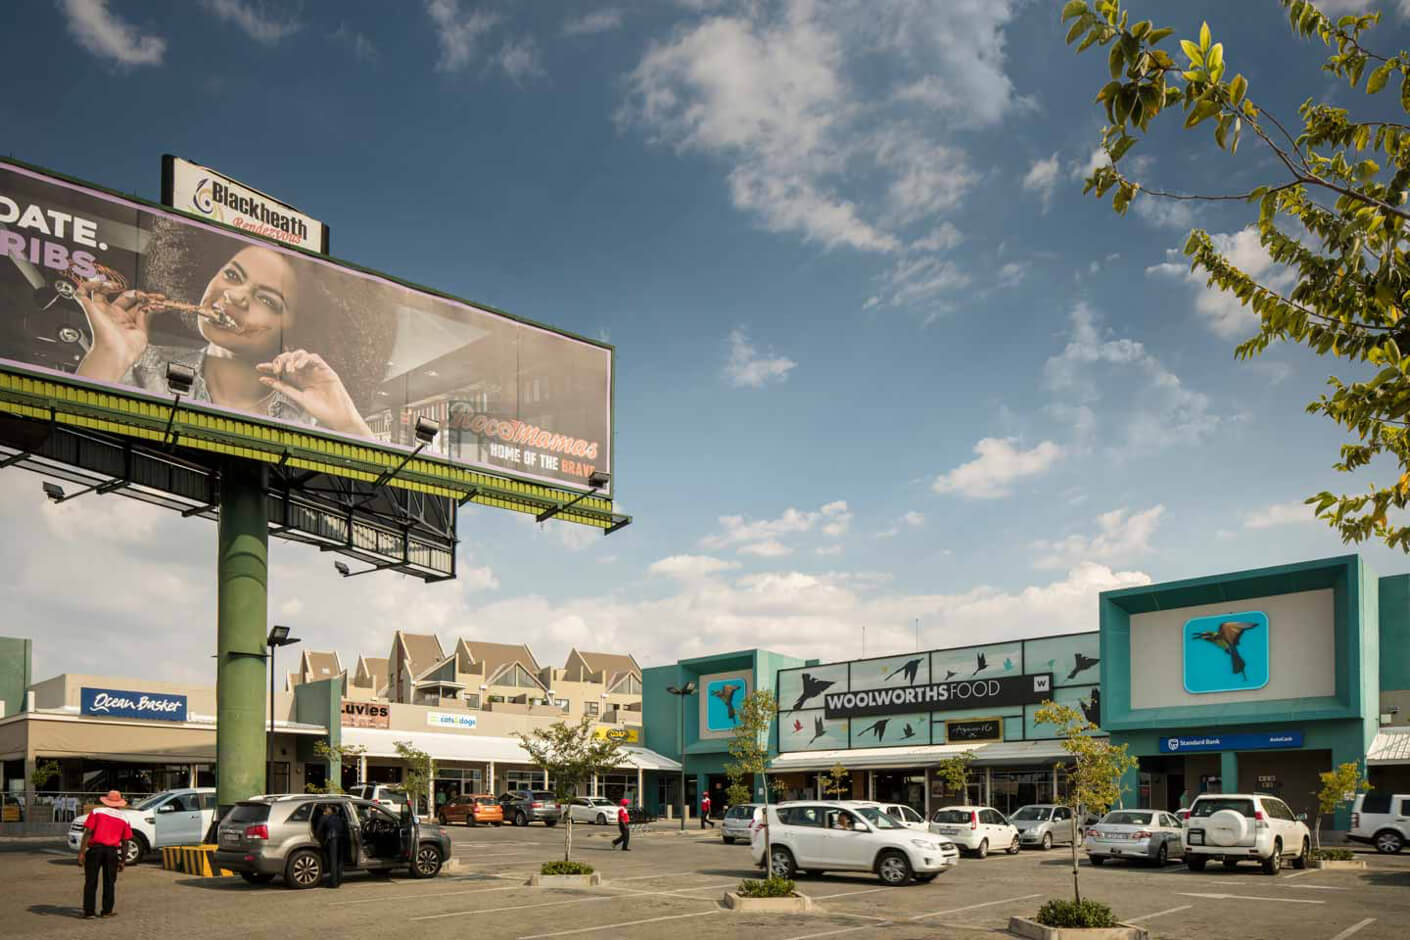 Cresta Crossing in Johannesburg, a project by Dorpstraat Properties